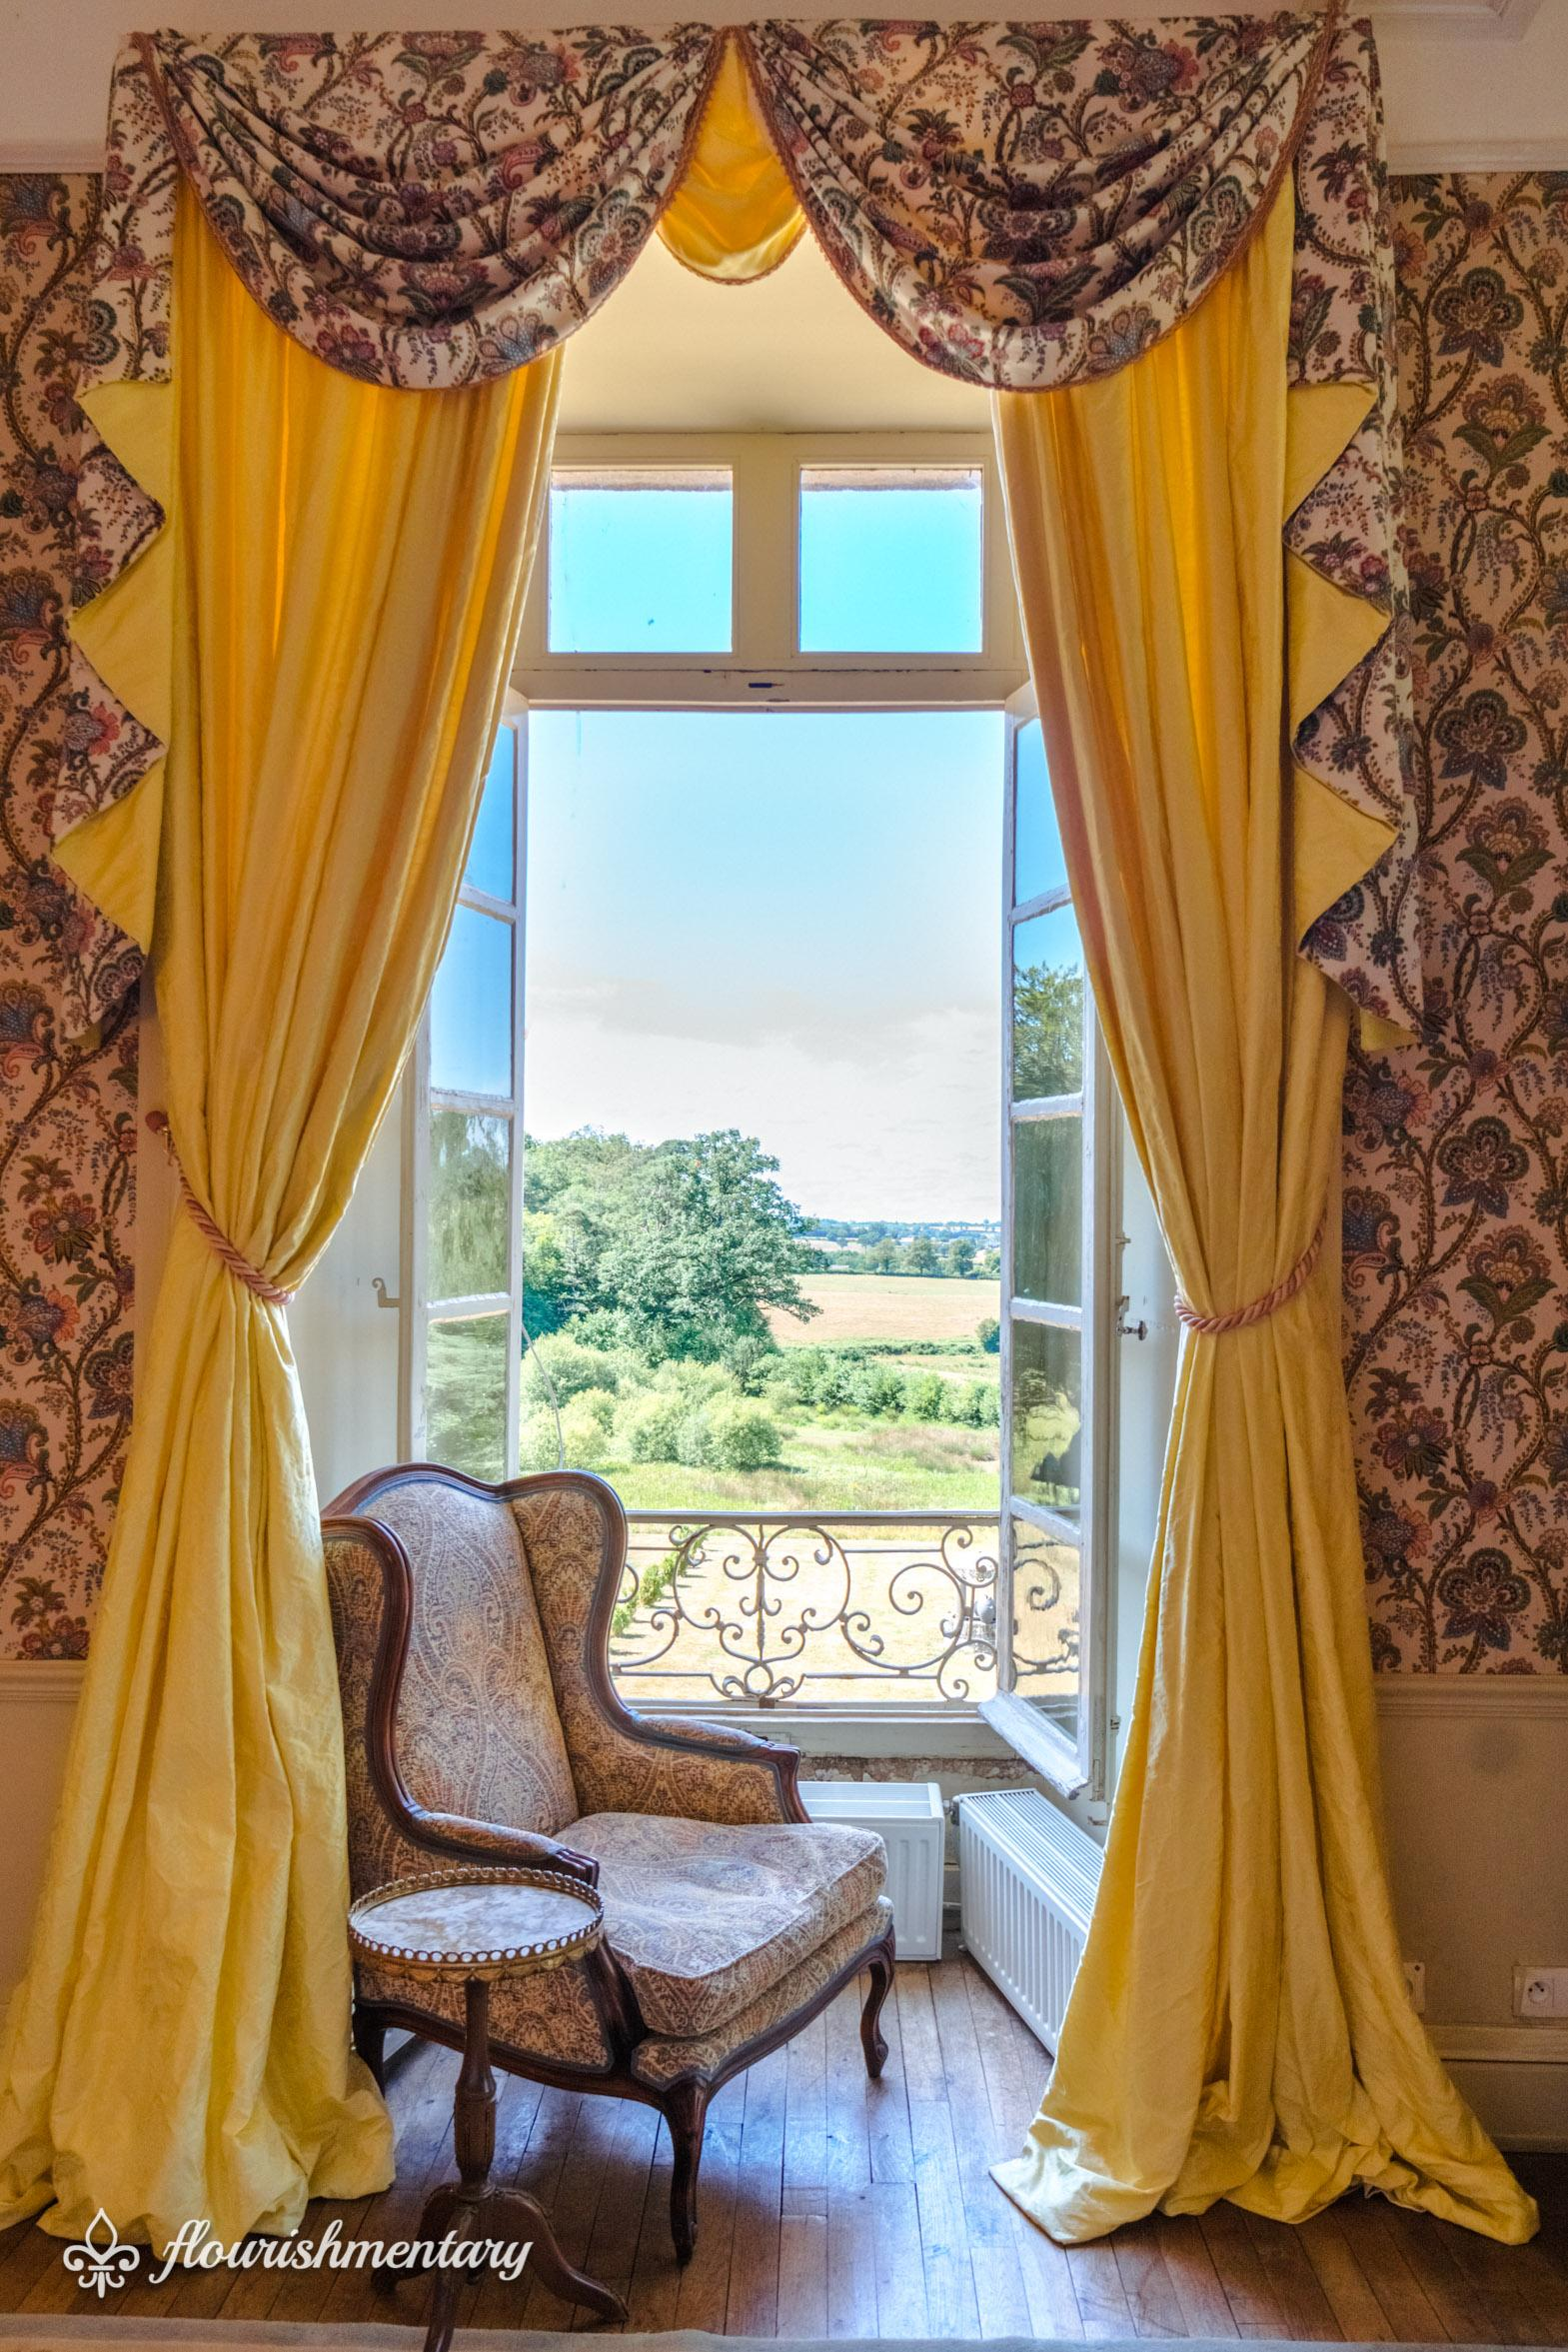 window view french chateau at chateau de lalande